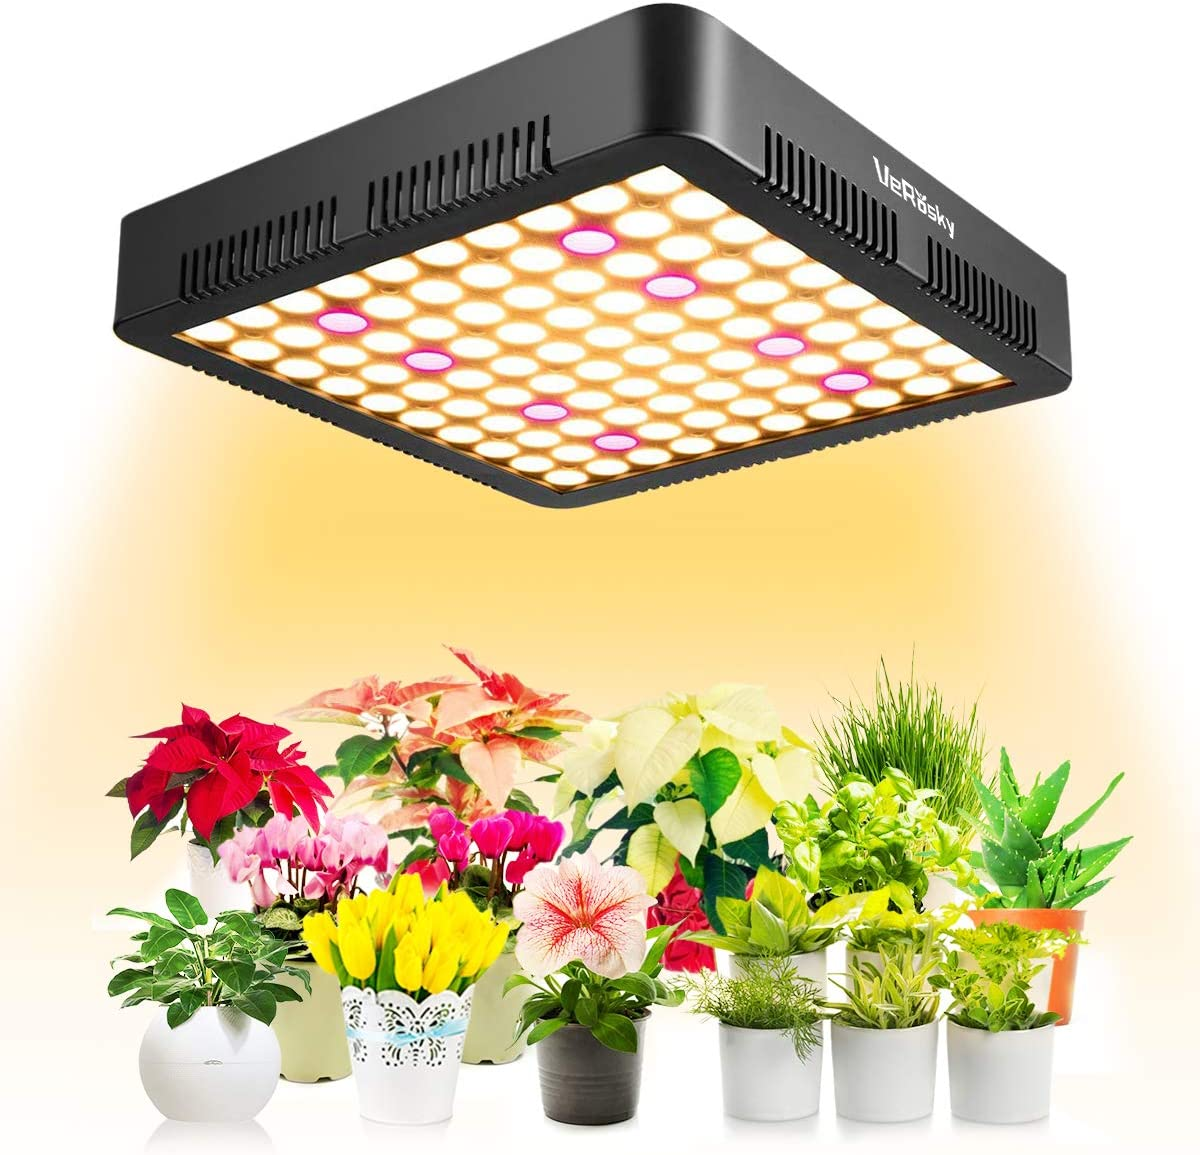 New Upgrade 1000W LED Grow Light, Dual Switch Dual Chips Full Spectrum LED Grow Light Hydroponic Indoor Plants Veg and Flower Actual Power 135W